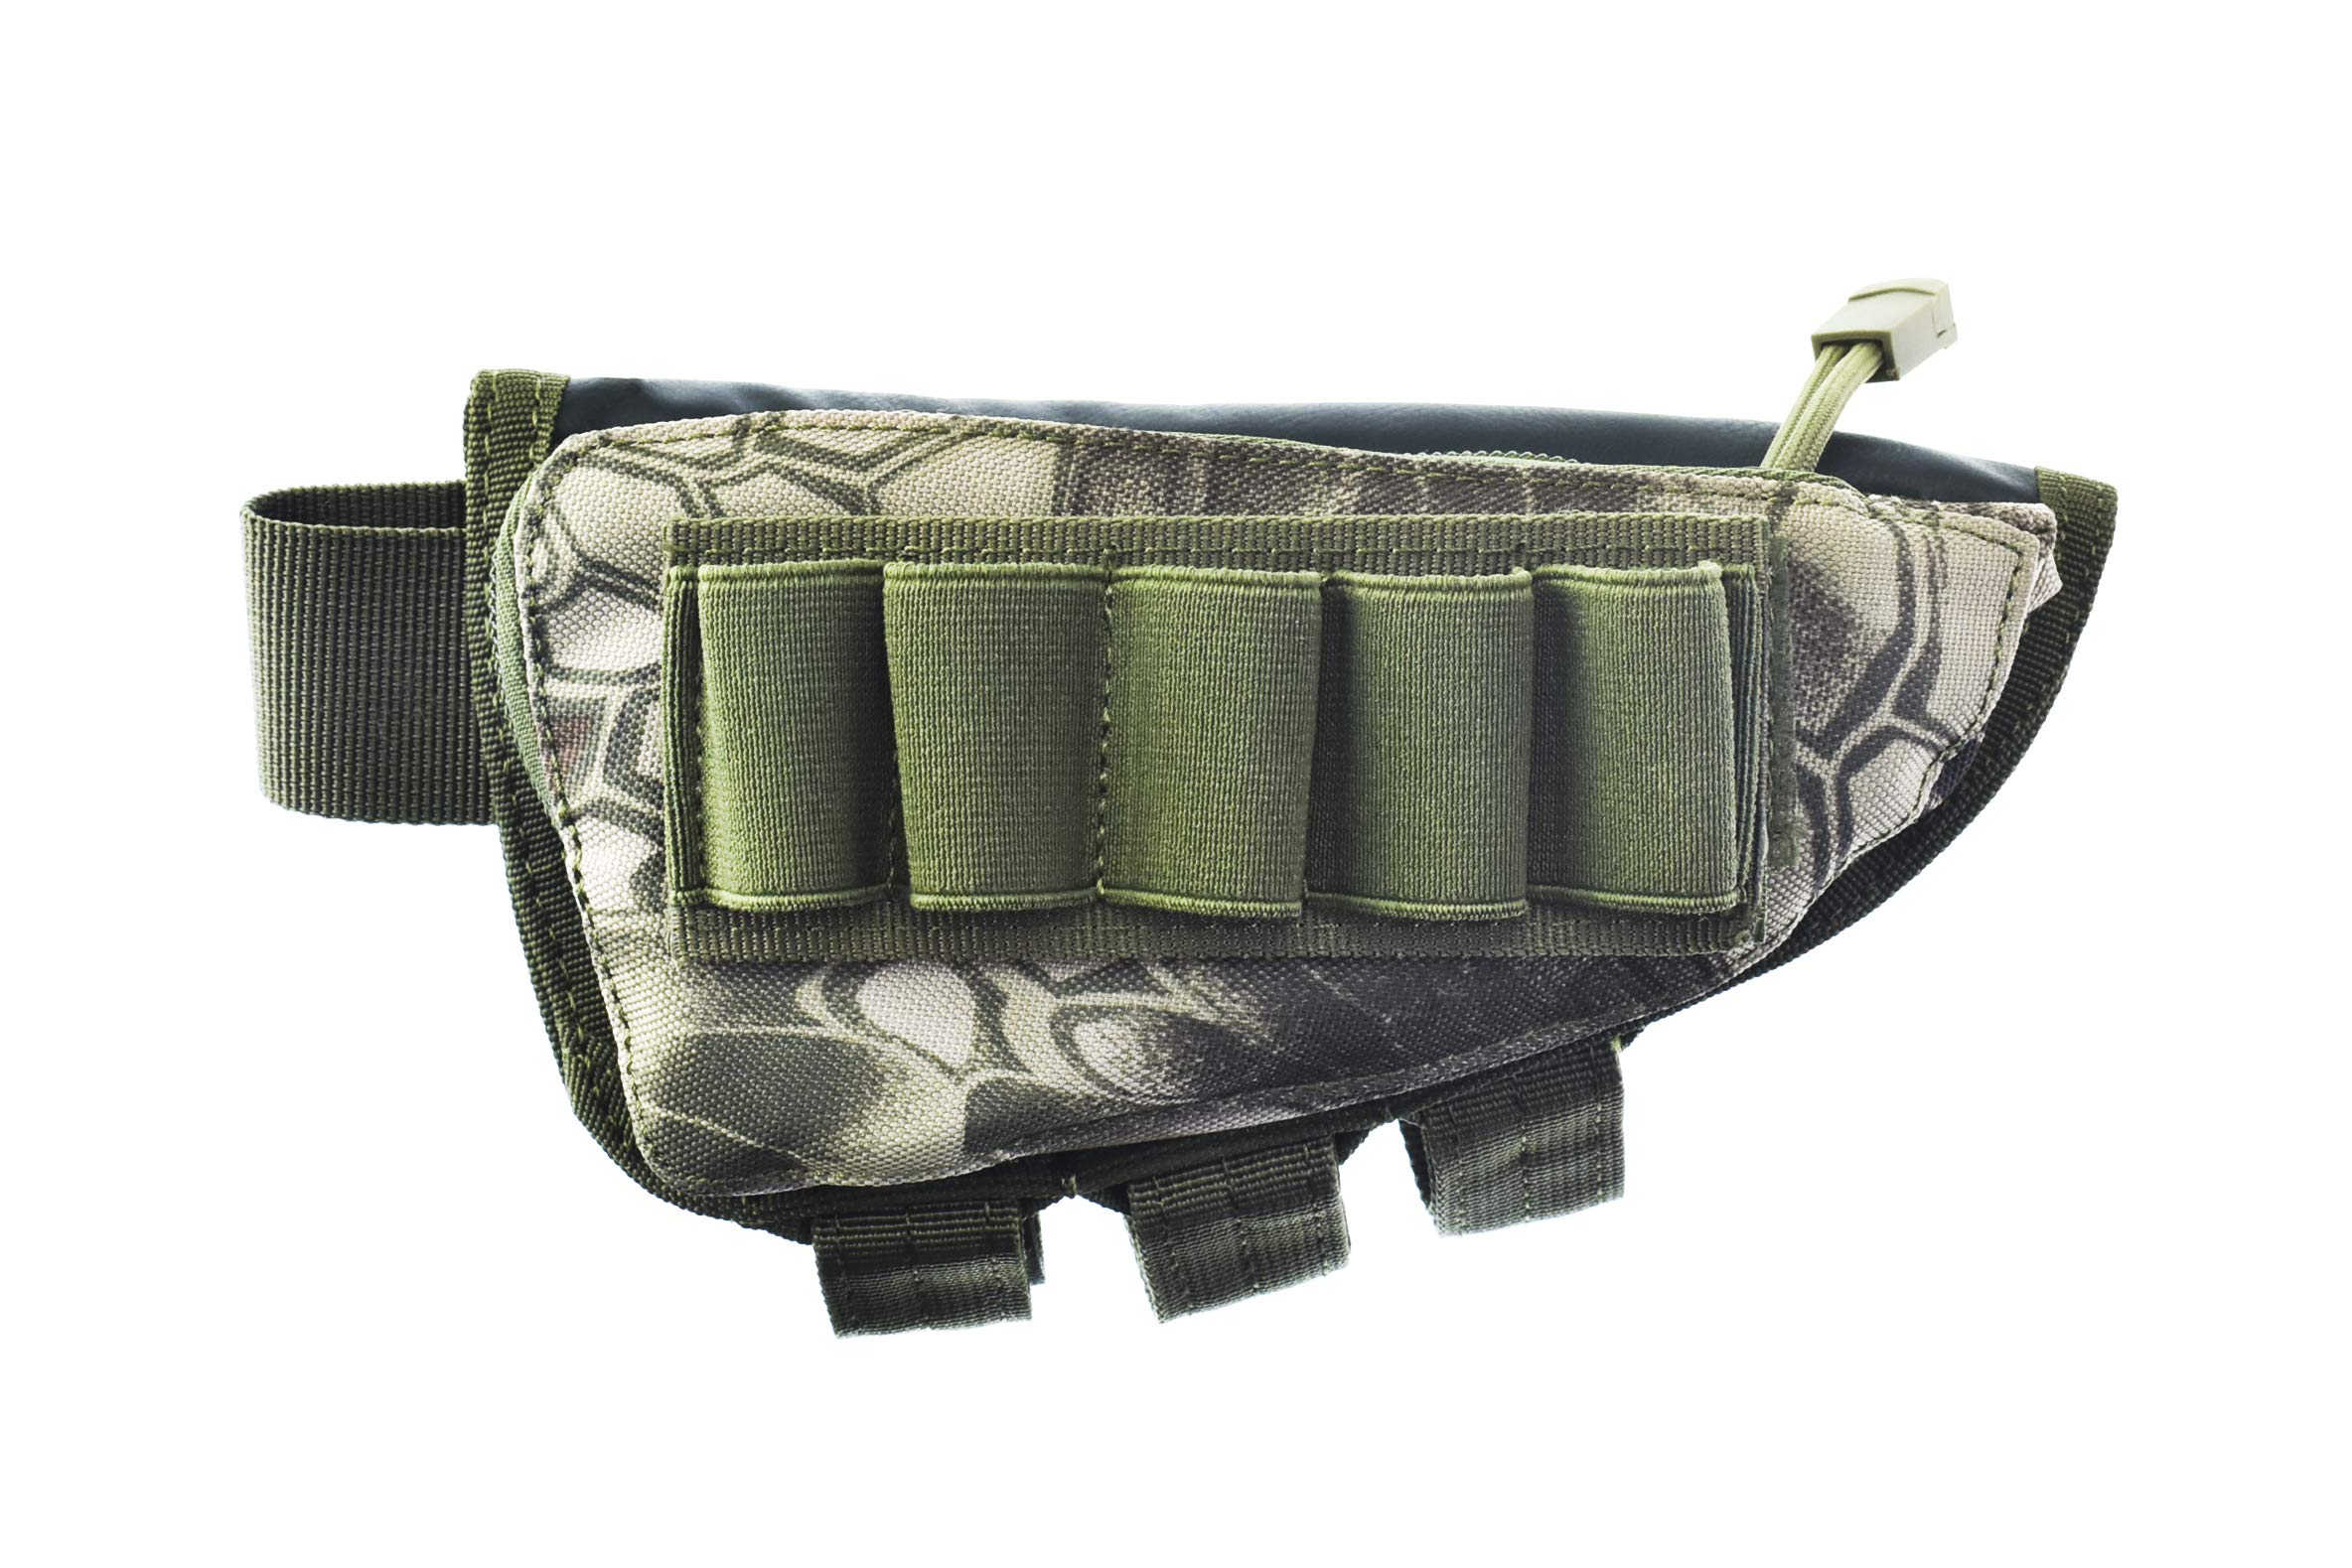 Risunpet Buttstock Ammo Holder Pouch Tactical Shell Holder for Shotgun Rifle Cheek Rest Pouch(Snake Green)